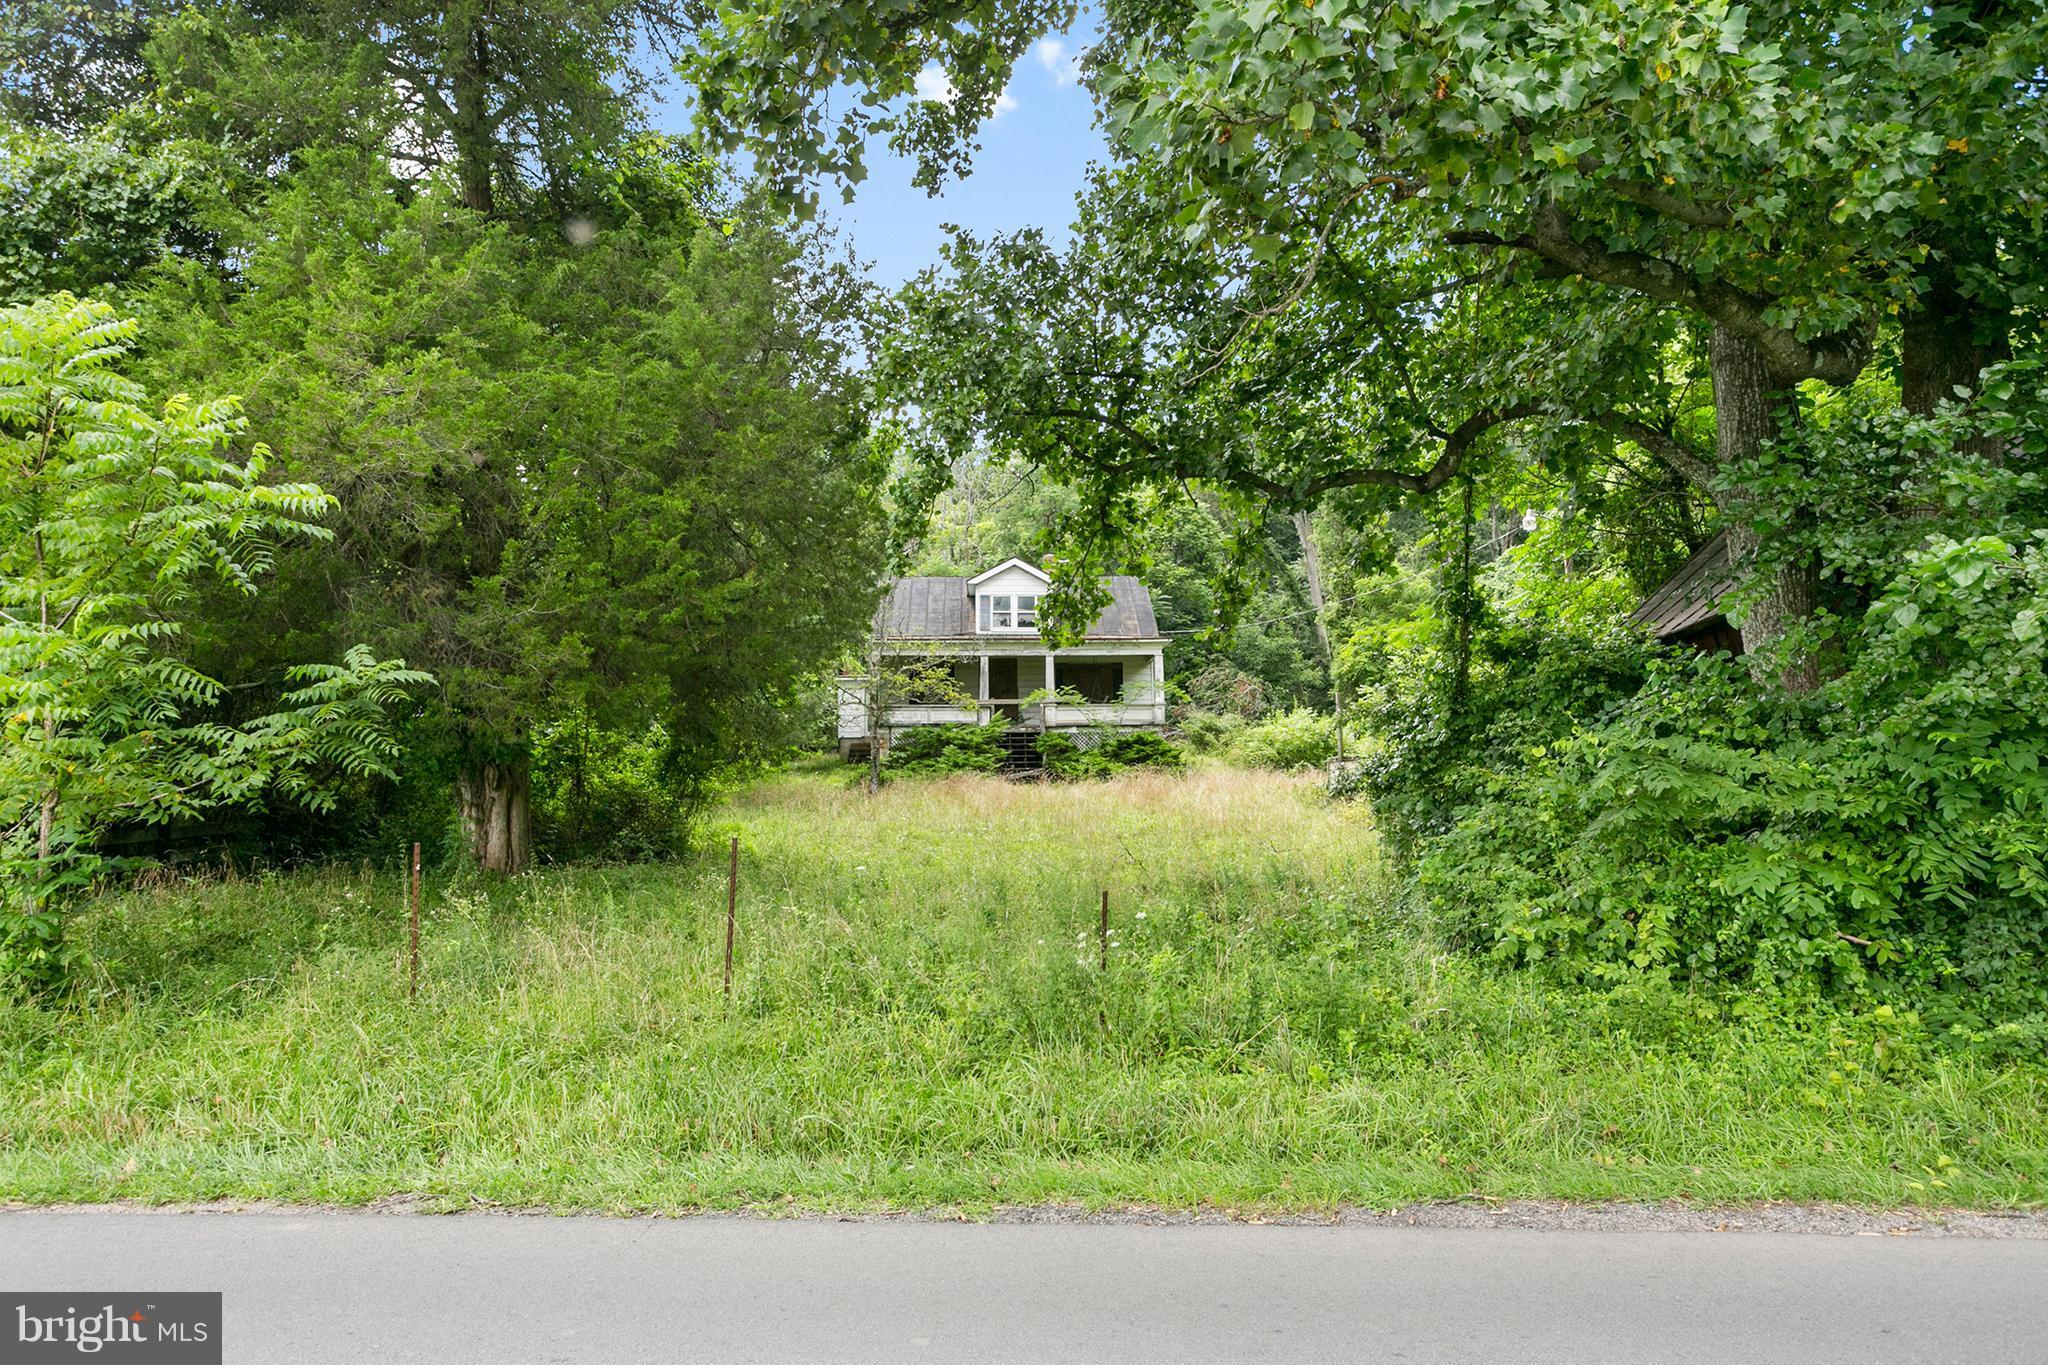 13339 MOUNTAIN ROAD, LOVETTSVILLE, VA 20180